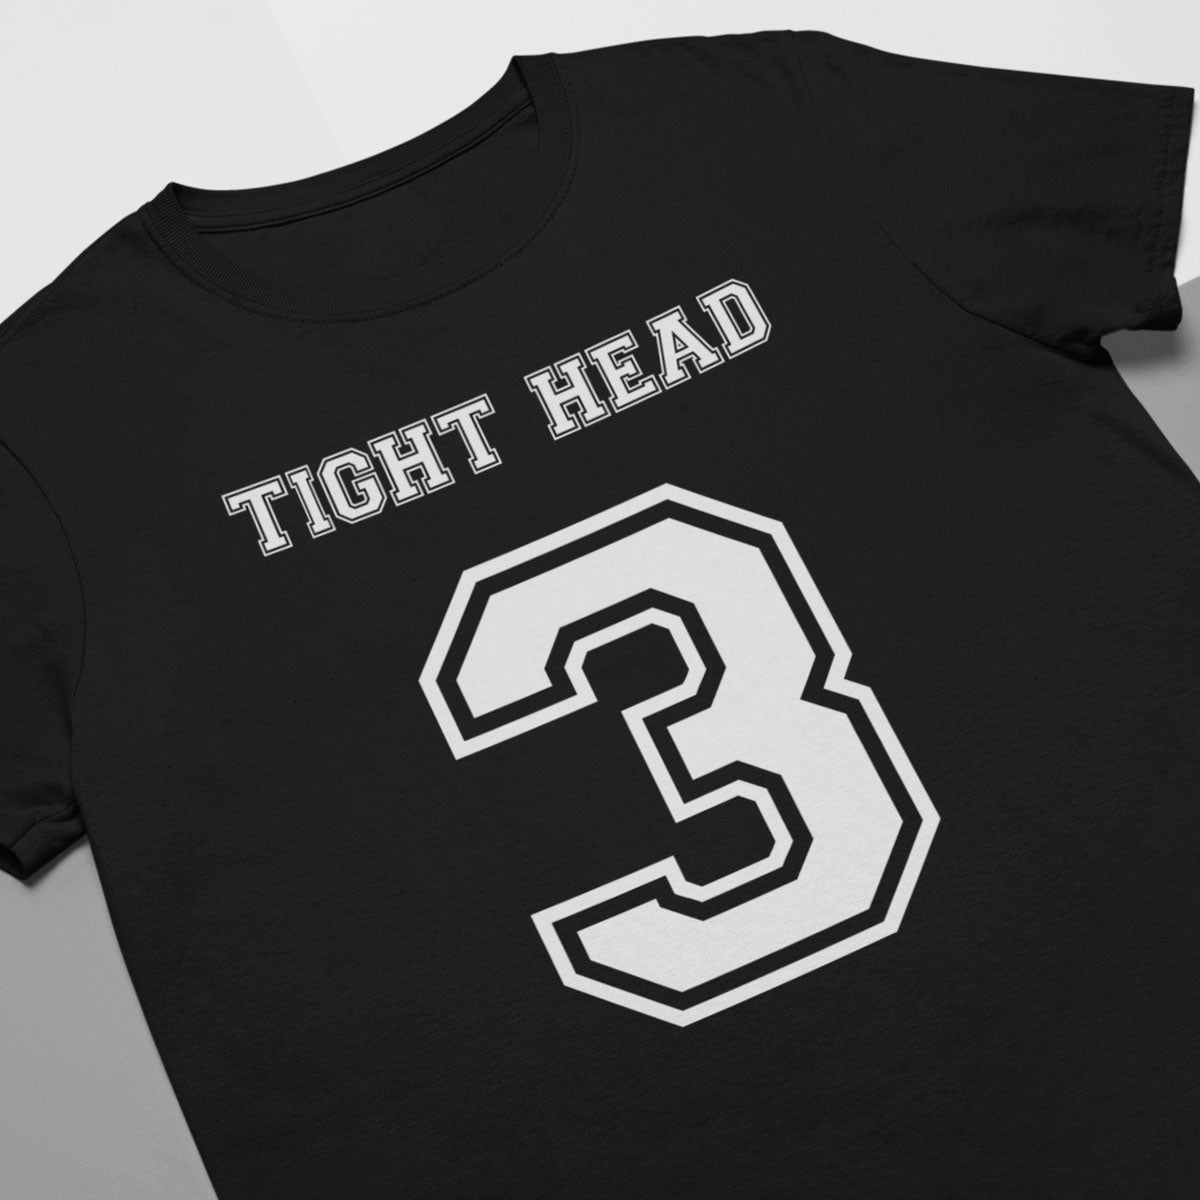 Tight Head Number 3 Rugby Tee - First XV rugbystuff.com